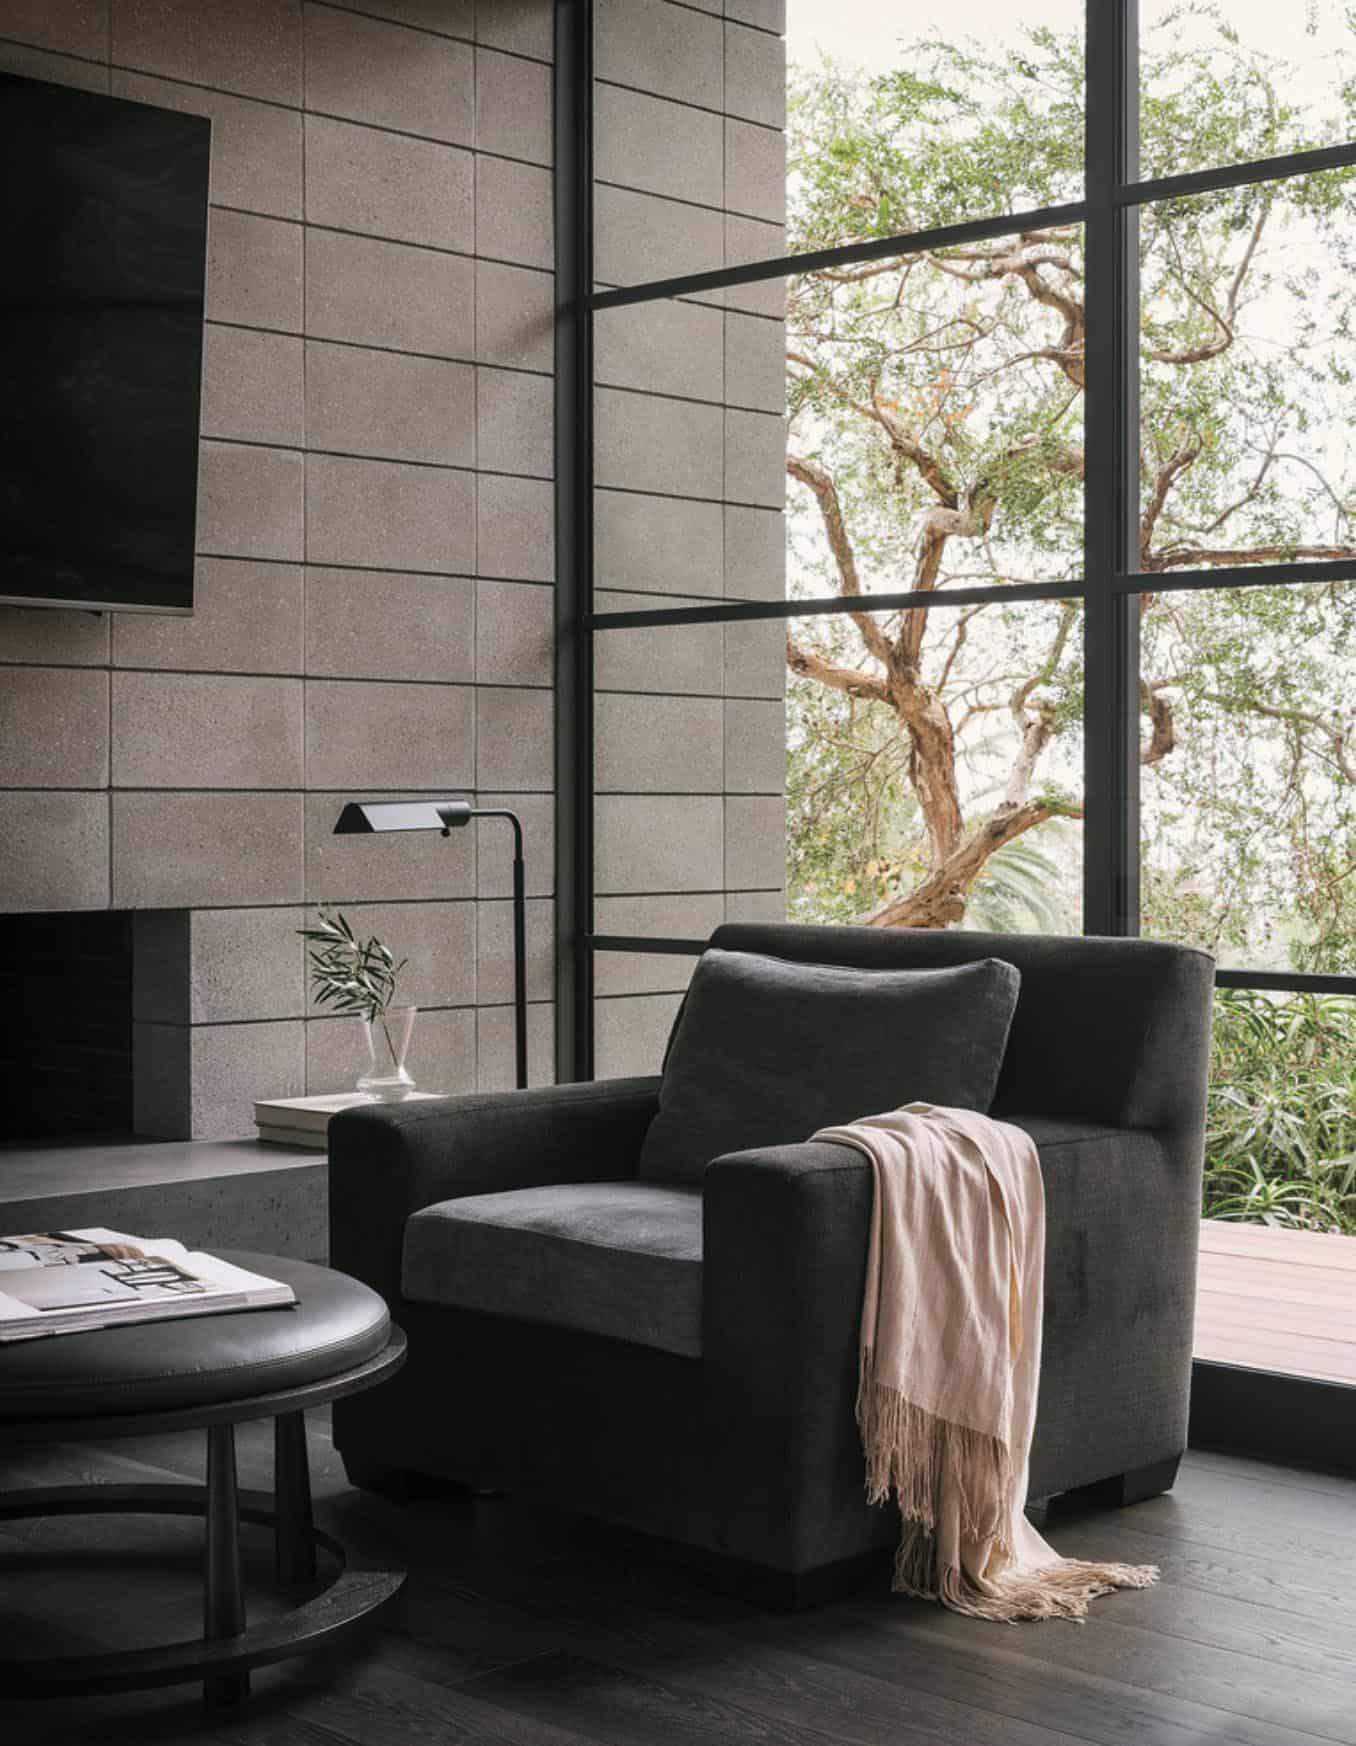 midcentury-bedroom-sitting-area-fireplace